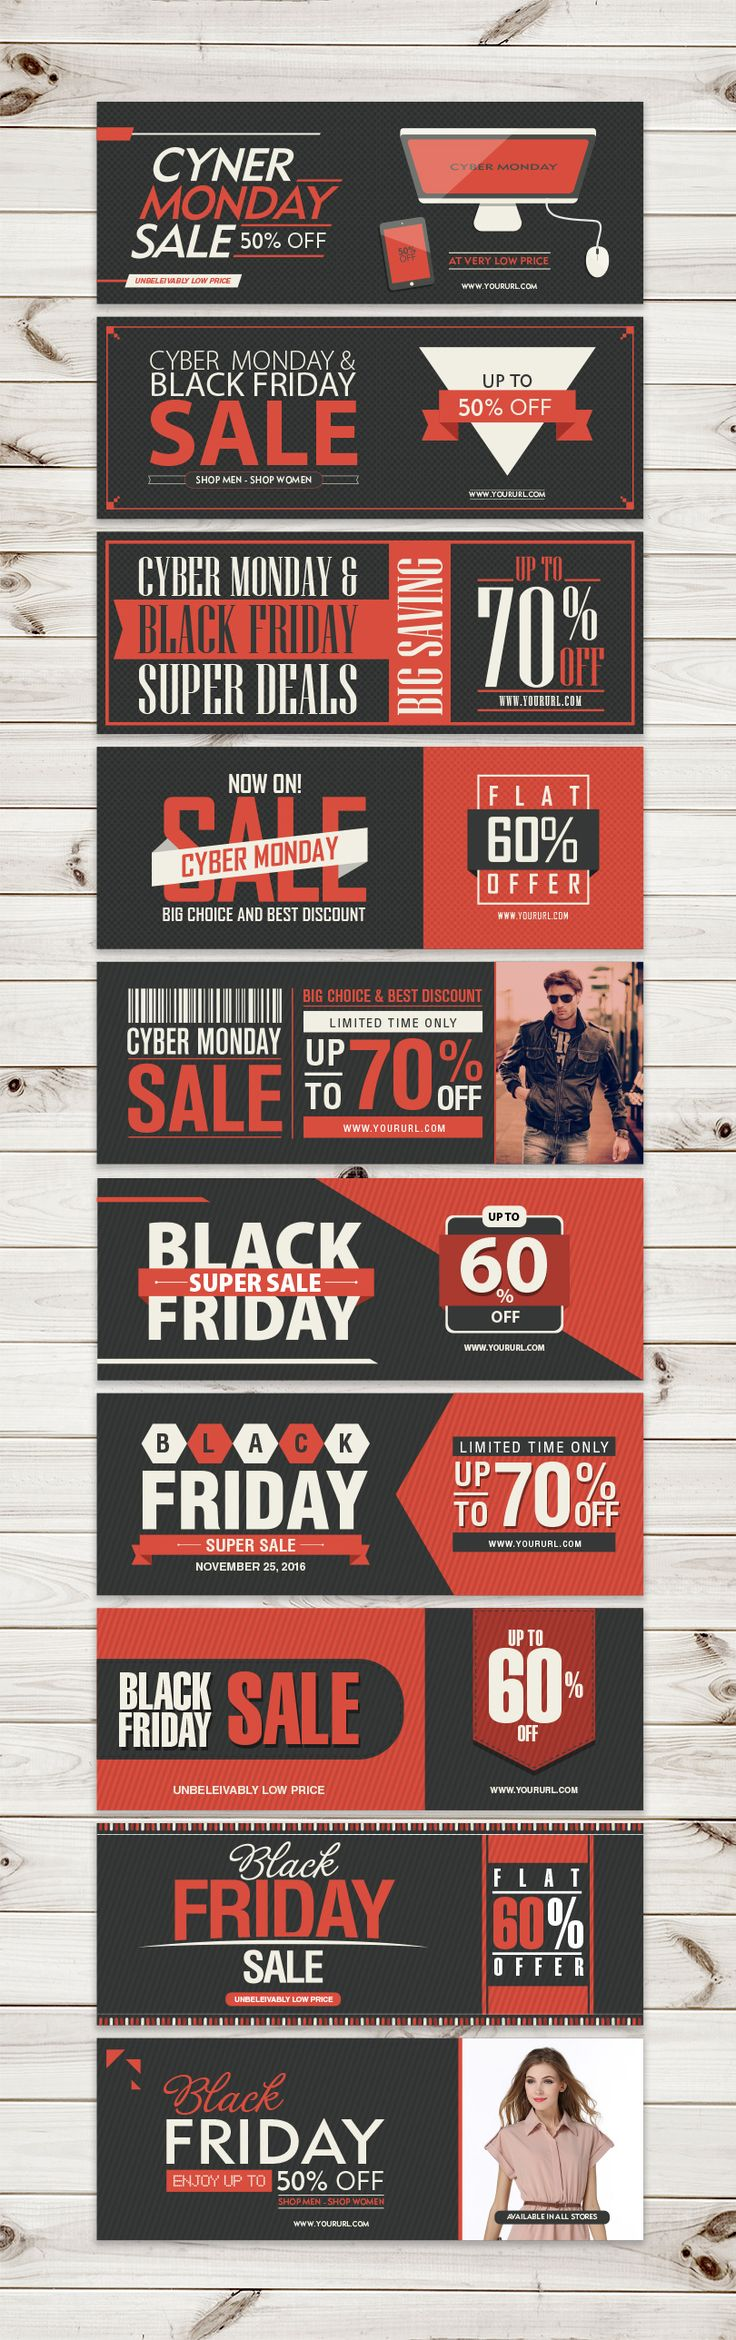 Banner Design Ideas 20 creative vertical banner design ideas Black Friday Cyber Monday Web Banners In Ai Eps Cdr Pdf Format